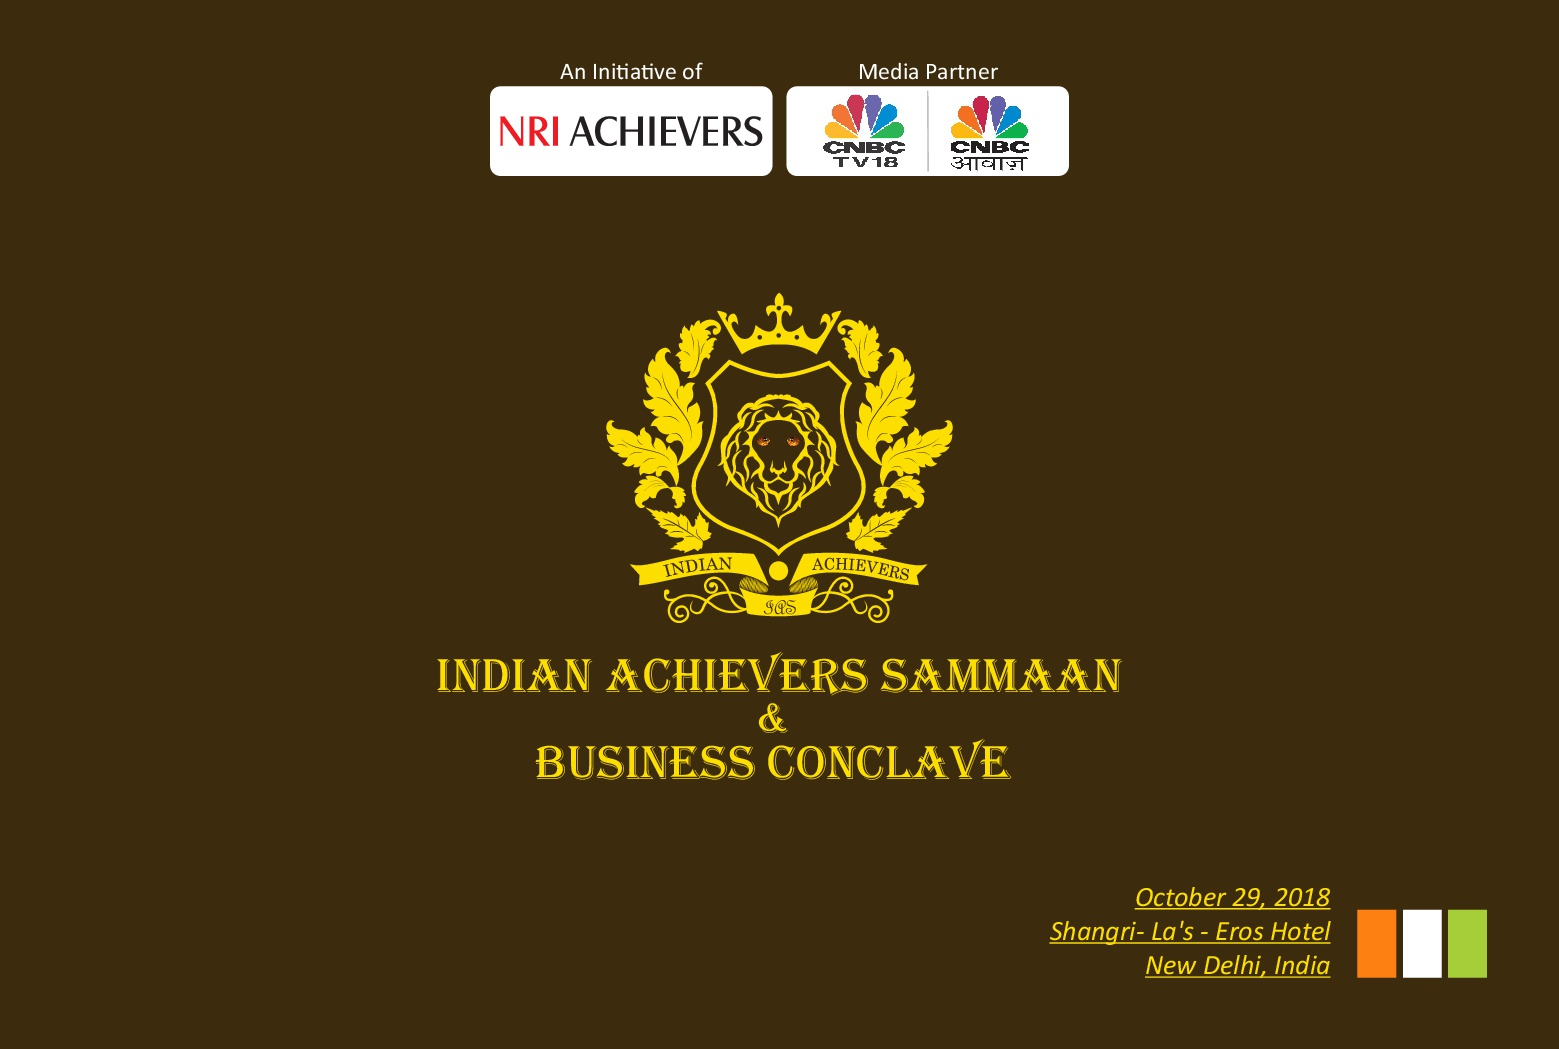 Indian-Achievers-Sammaan-&-Business-Conclave-2018-001